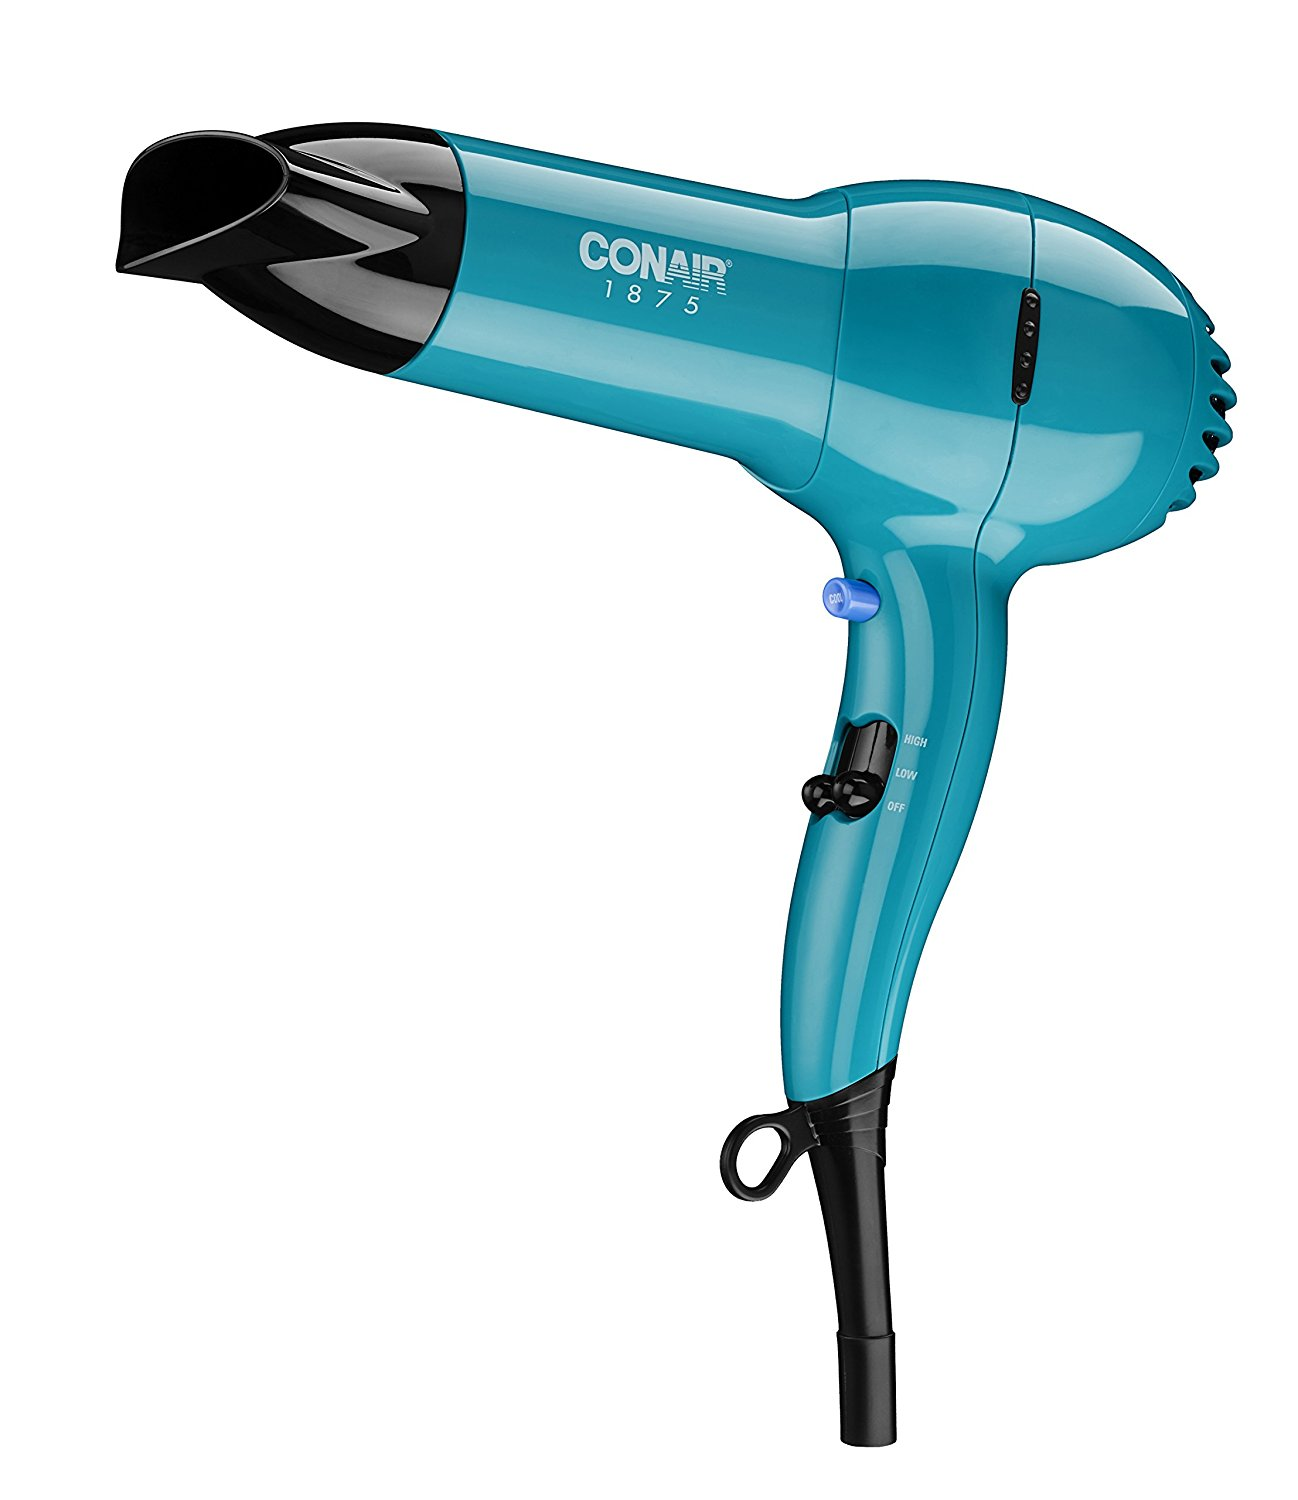 Conair 1875 Watt Full Size Pro Hair Dryer with Ionic Conditioning; Teal - Amazon Exclusive - Hair Dryer for Men